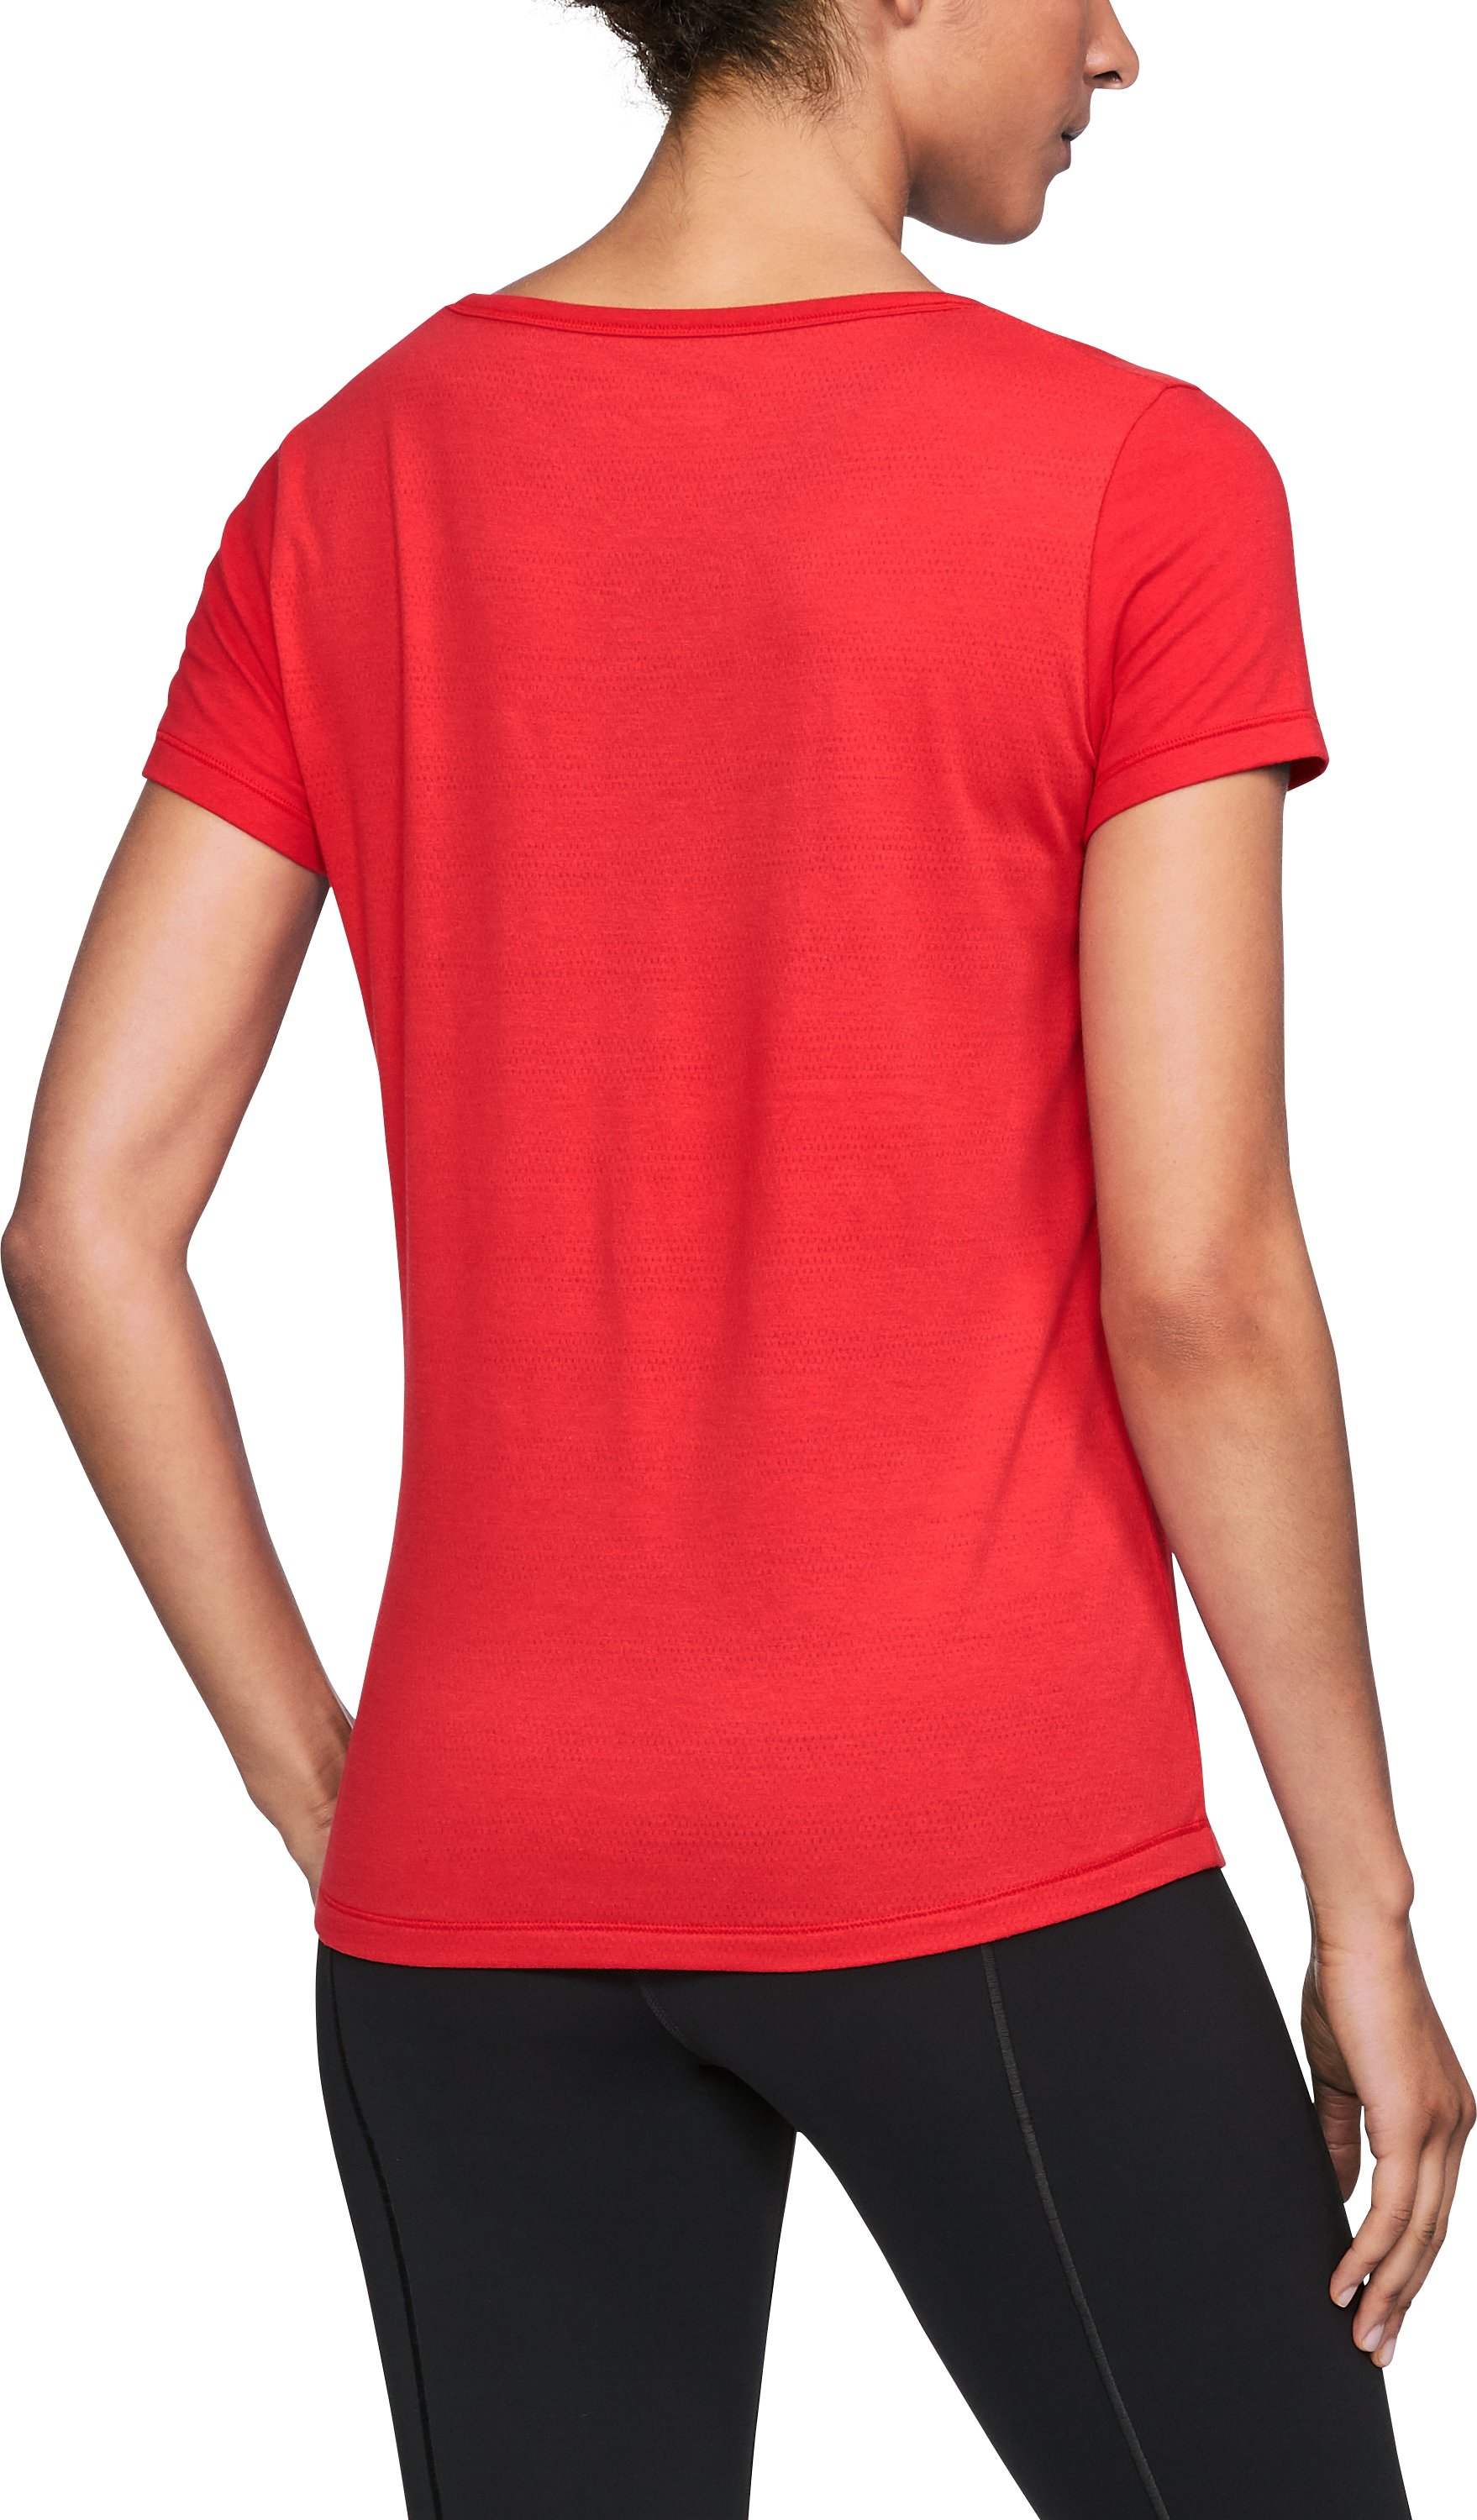 Women's Utah UA Vent Short Sleeve T-Shirt, Red, undefined